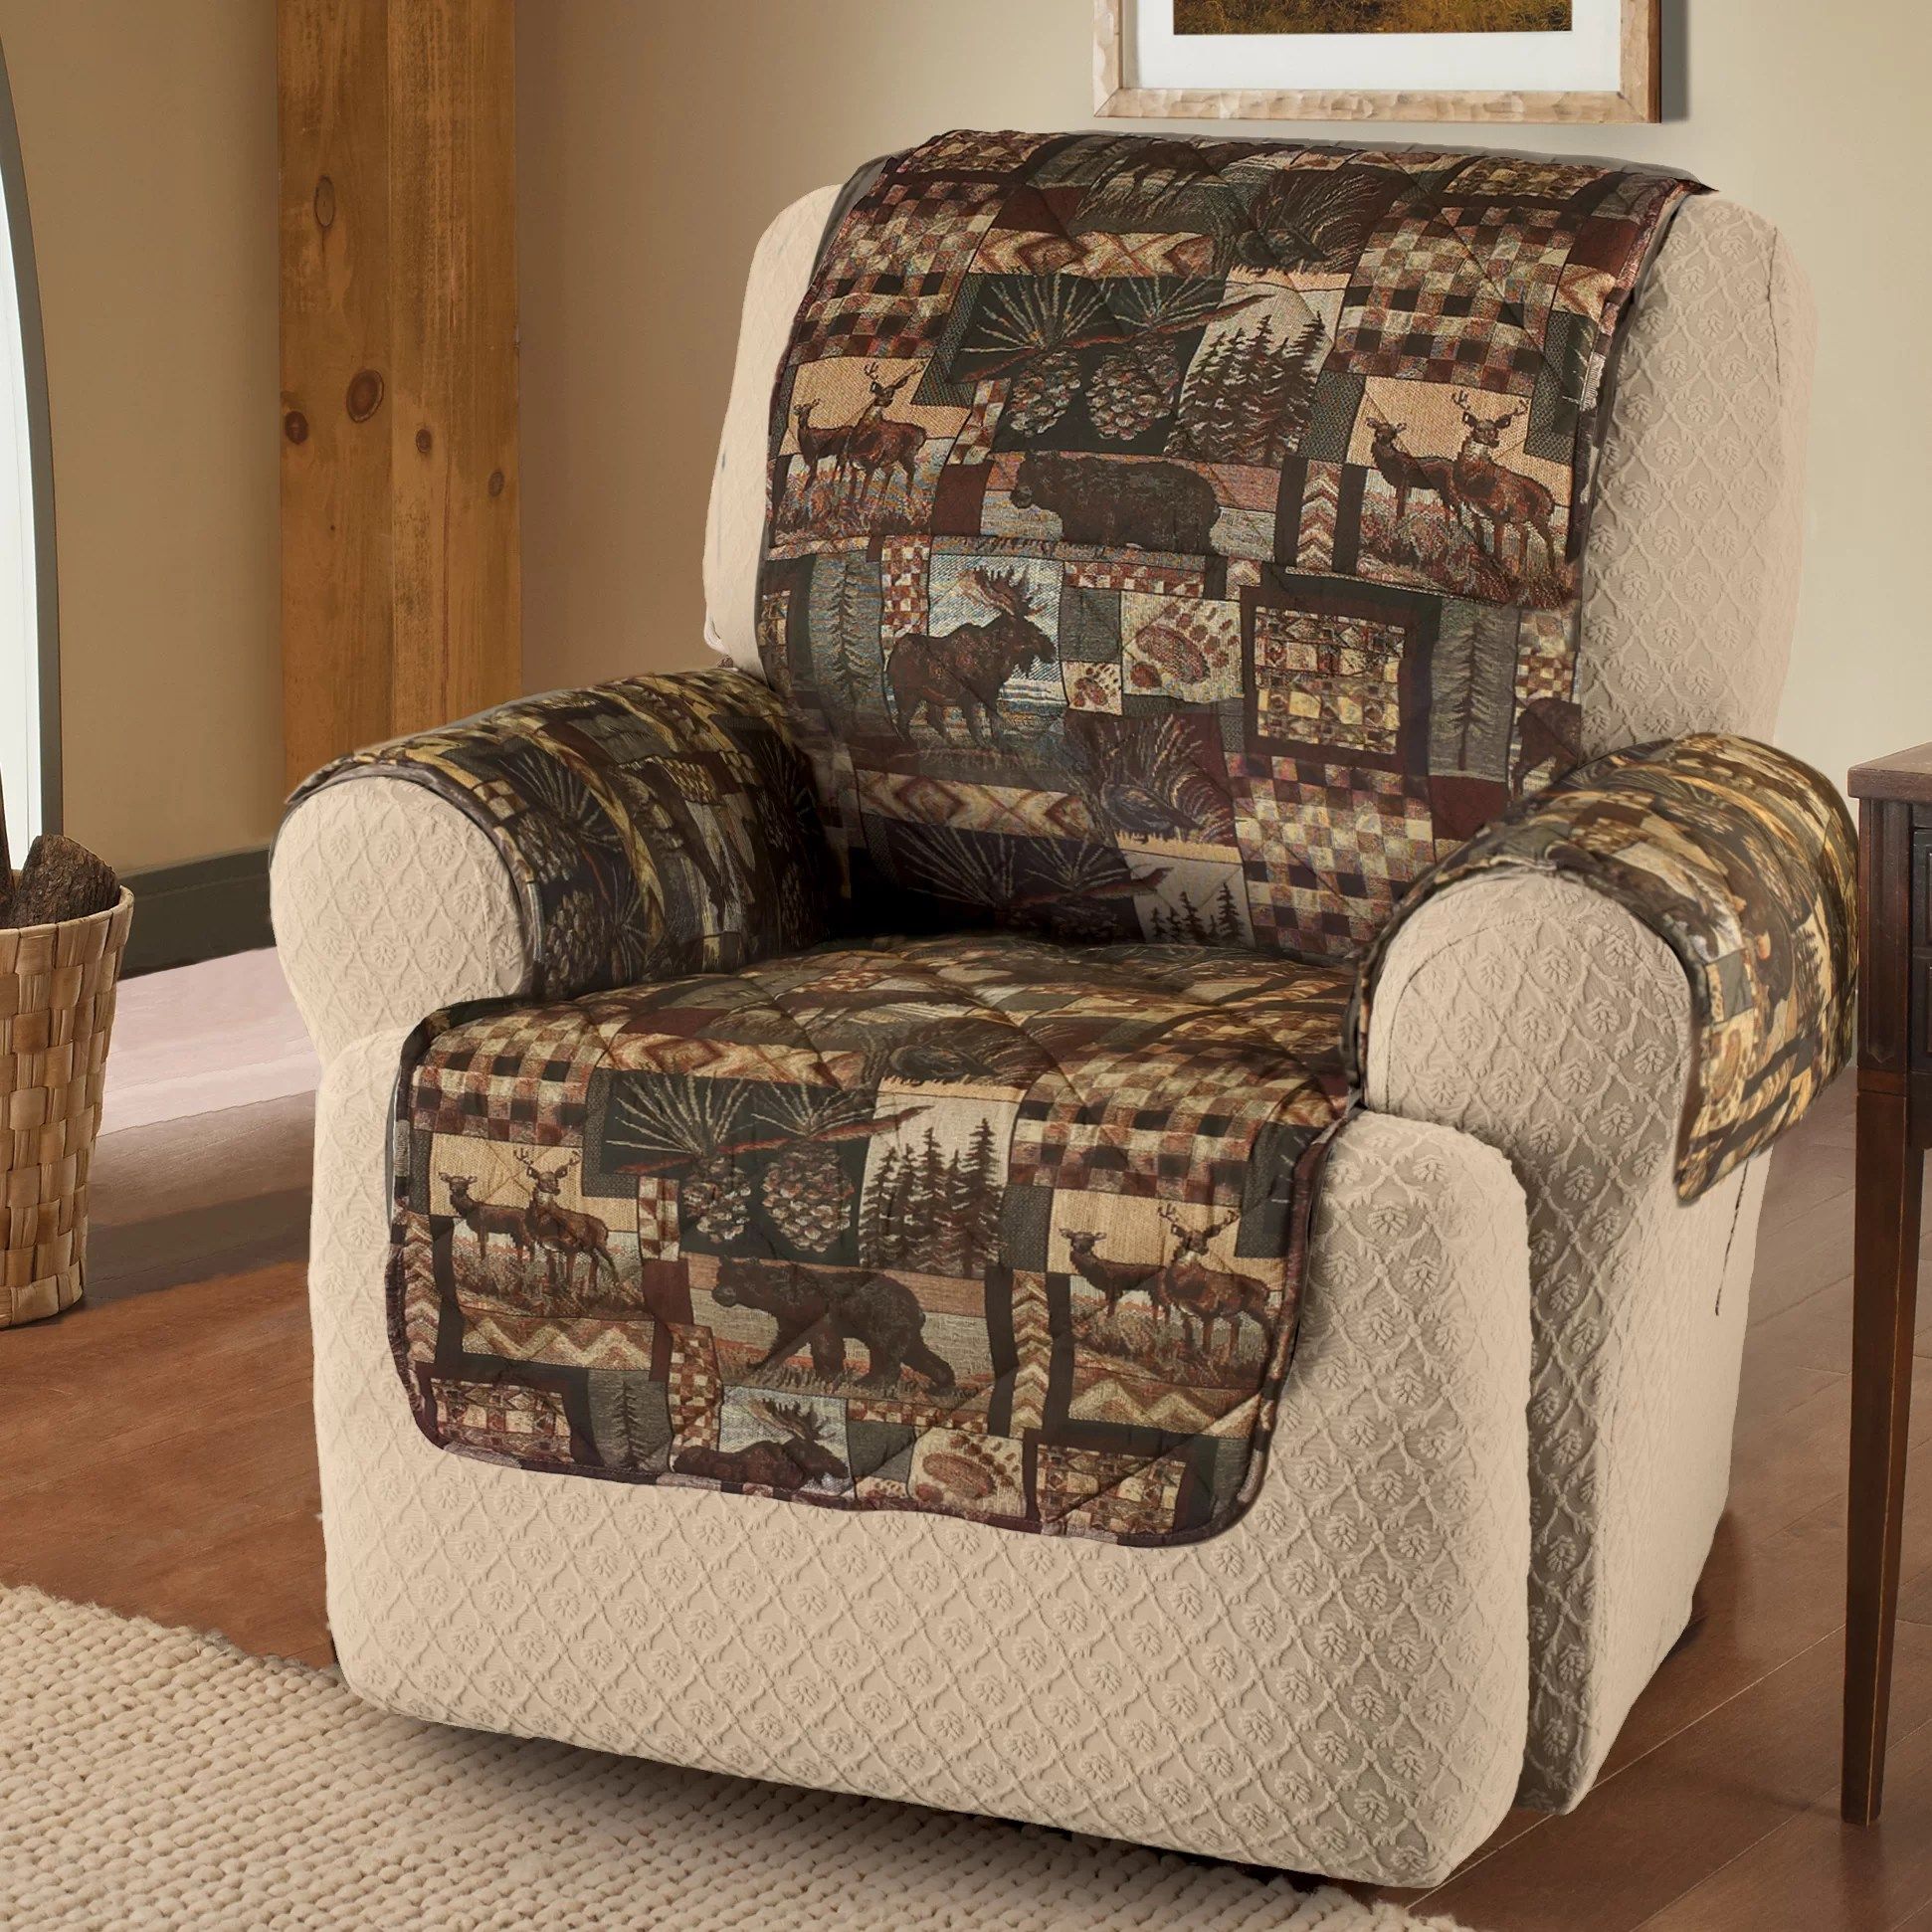 microfiber recliner chair covers chairs for the end of your bed innovative textile solutions lodge protector wing